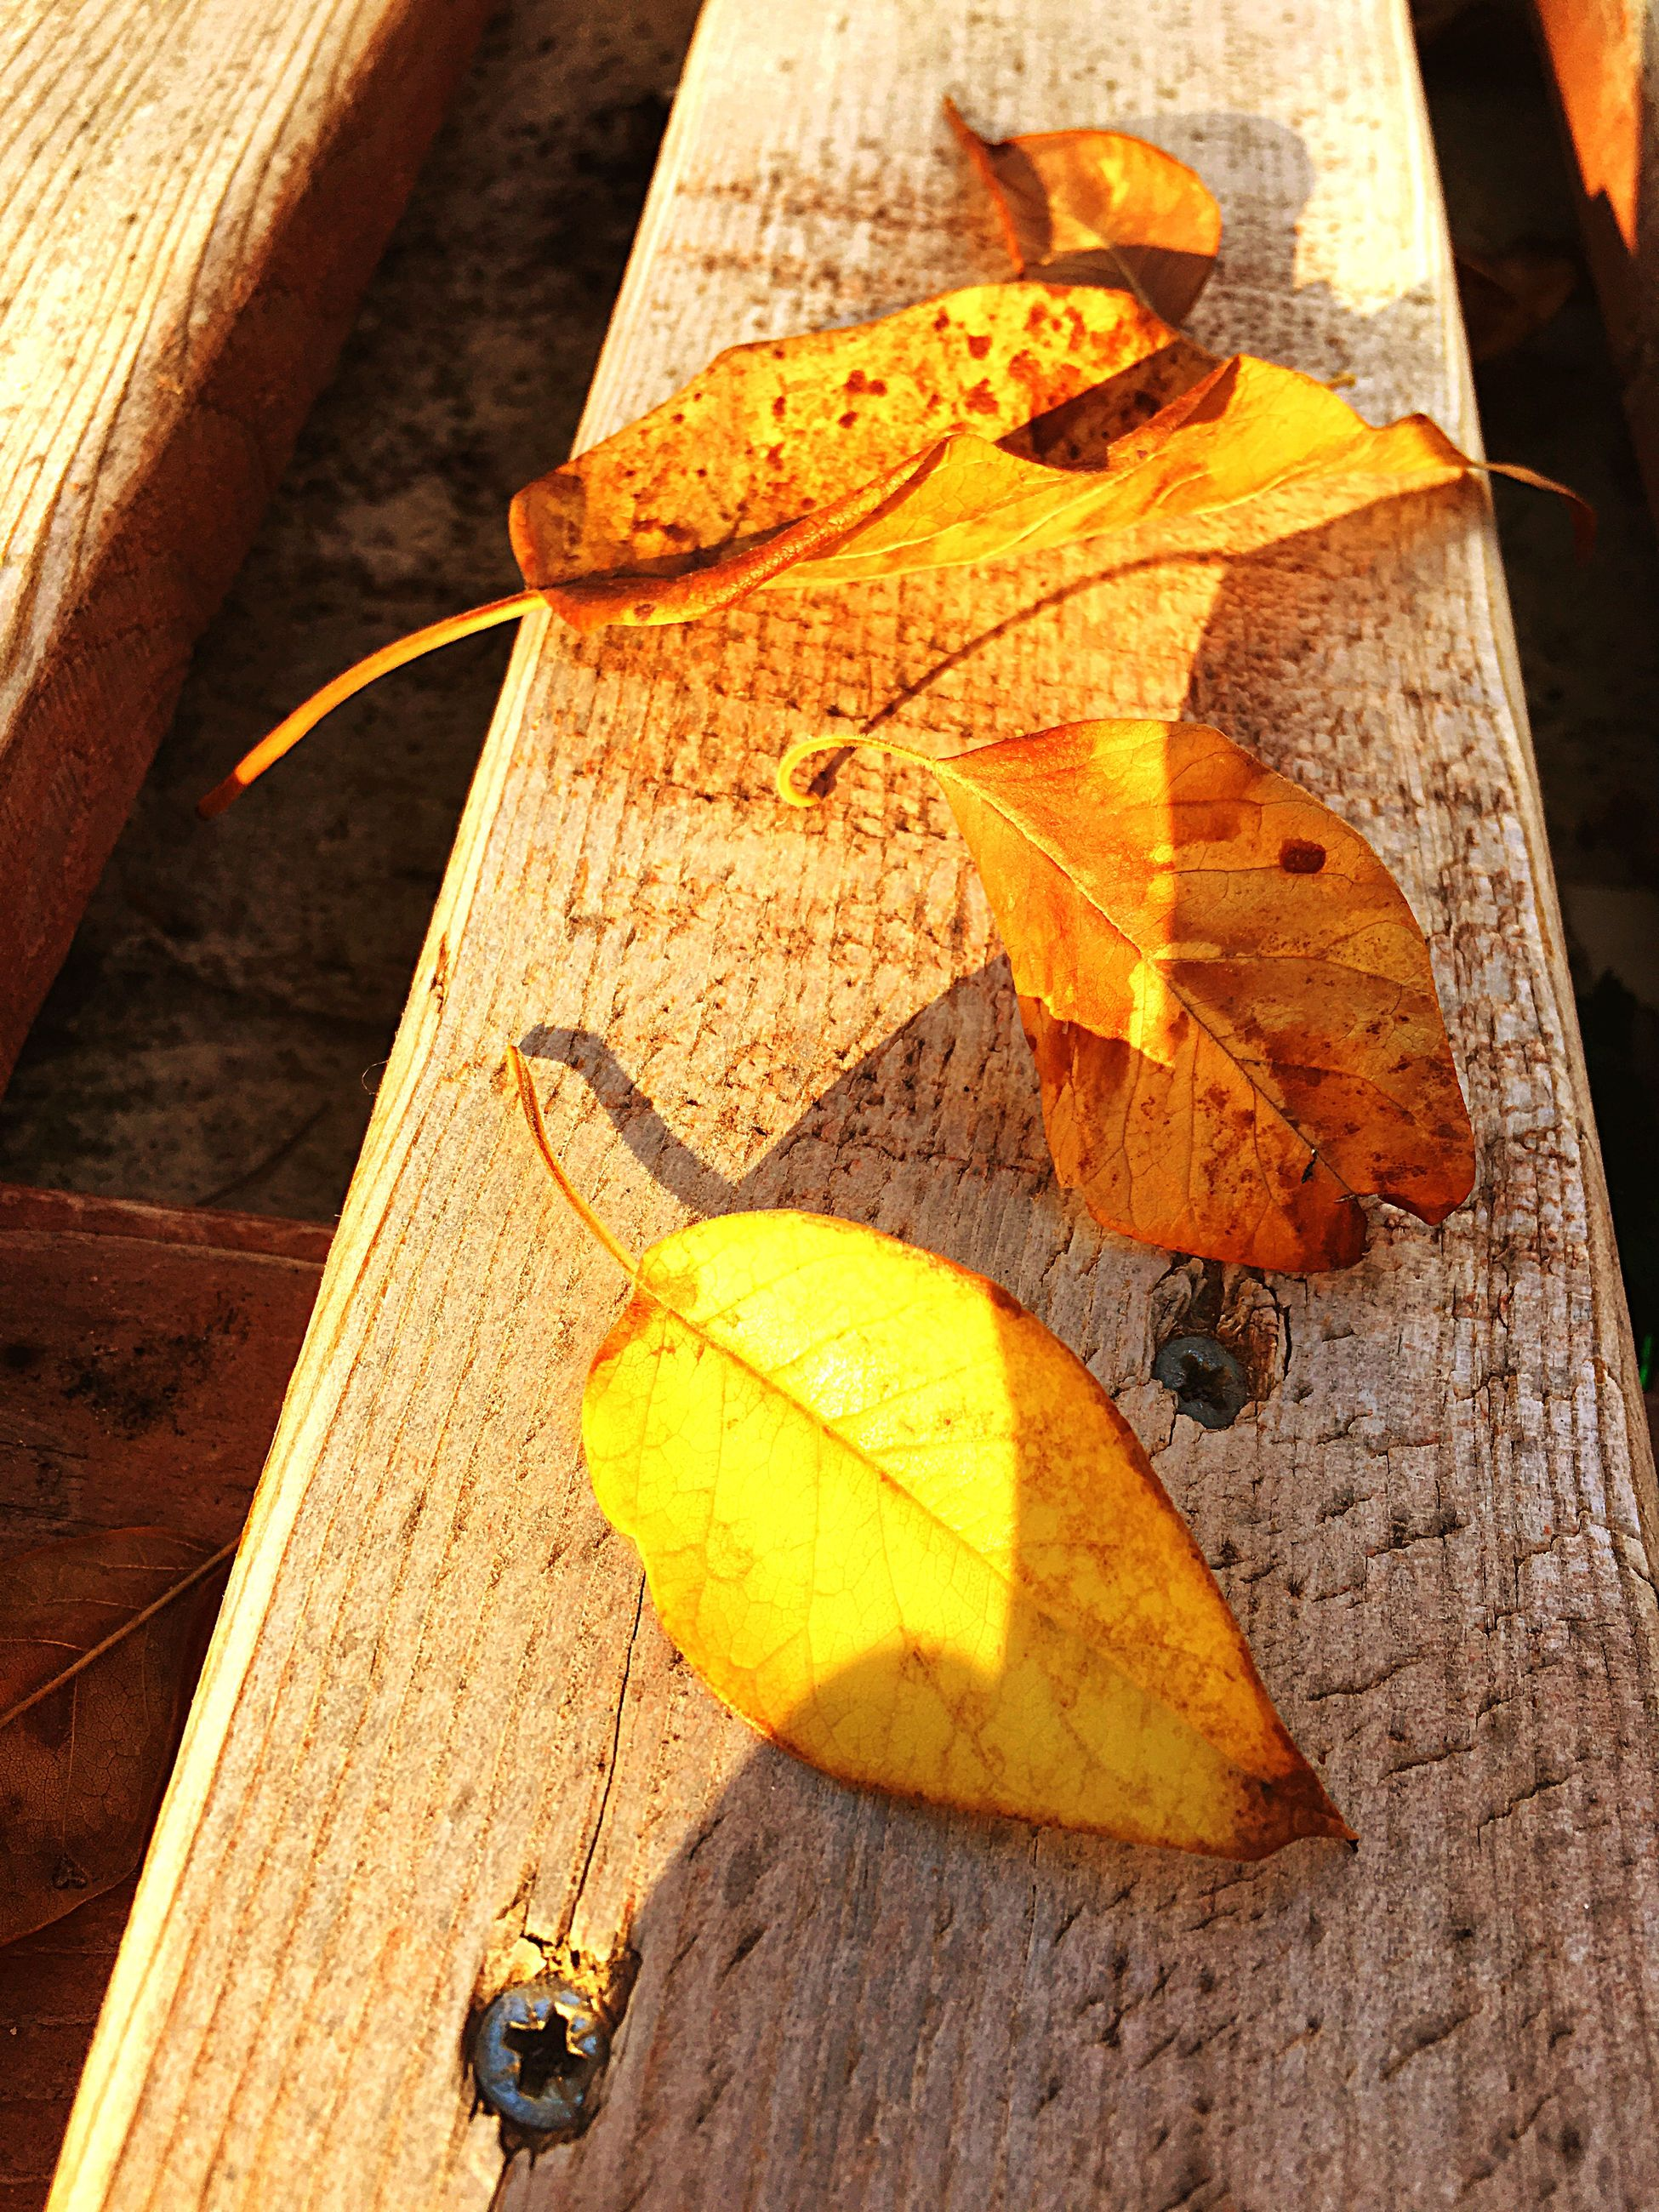 leaf, autumn, high angle view, change, season, yellow, close-up, wooden, deterioration, maple leaf, tranquility, fallen leaf, fallen, nature, outdoors, bad condition, no people